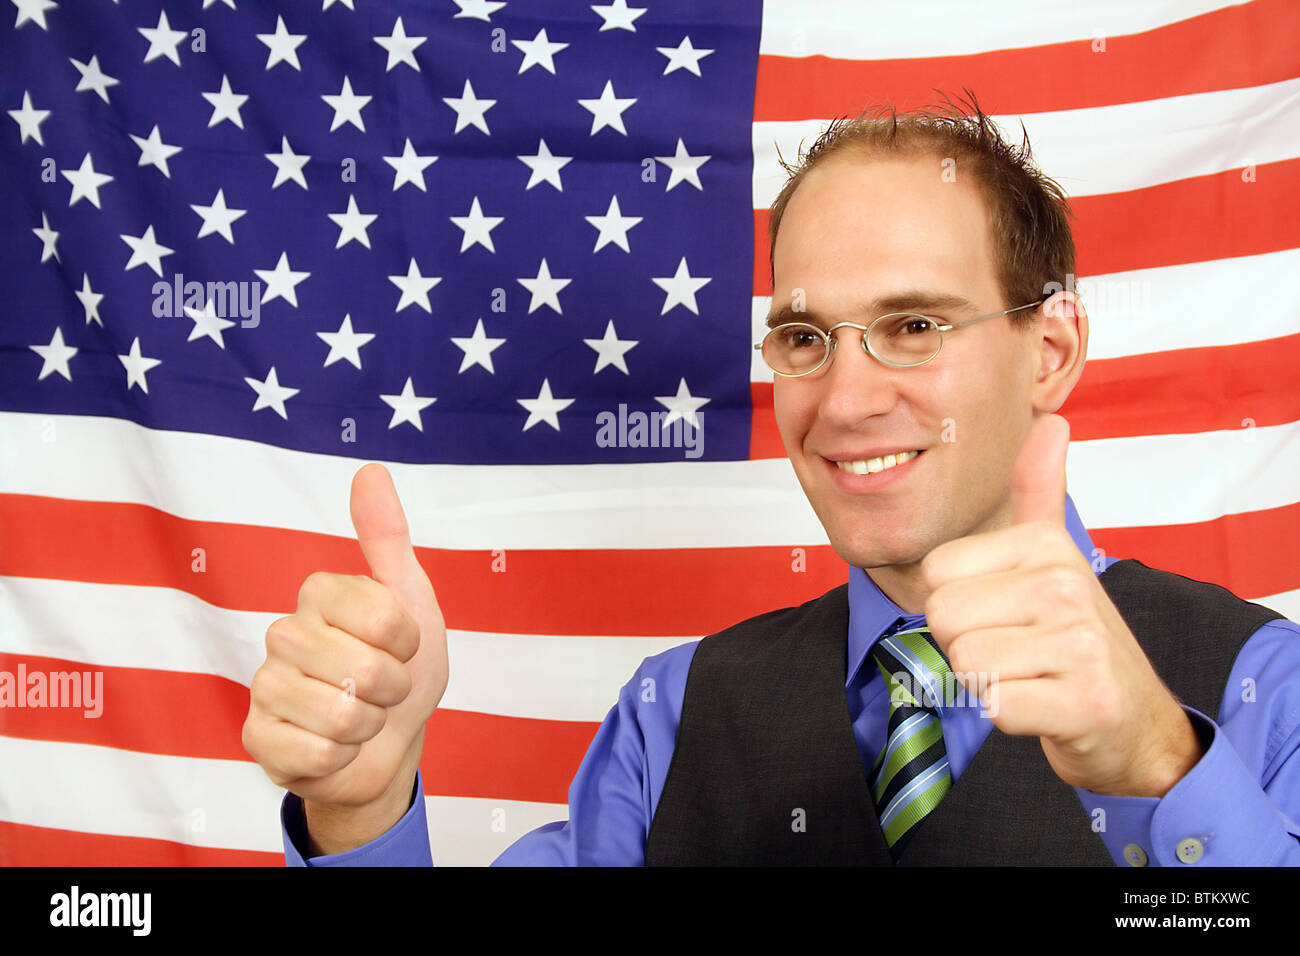 A young businessman jubilation in front of the flag of the United States of America. - Stock Image